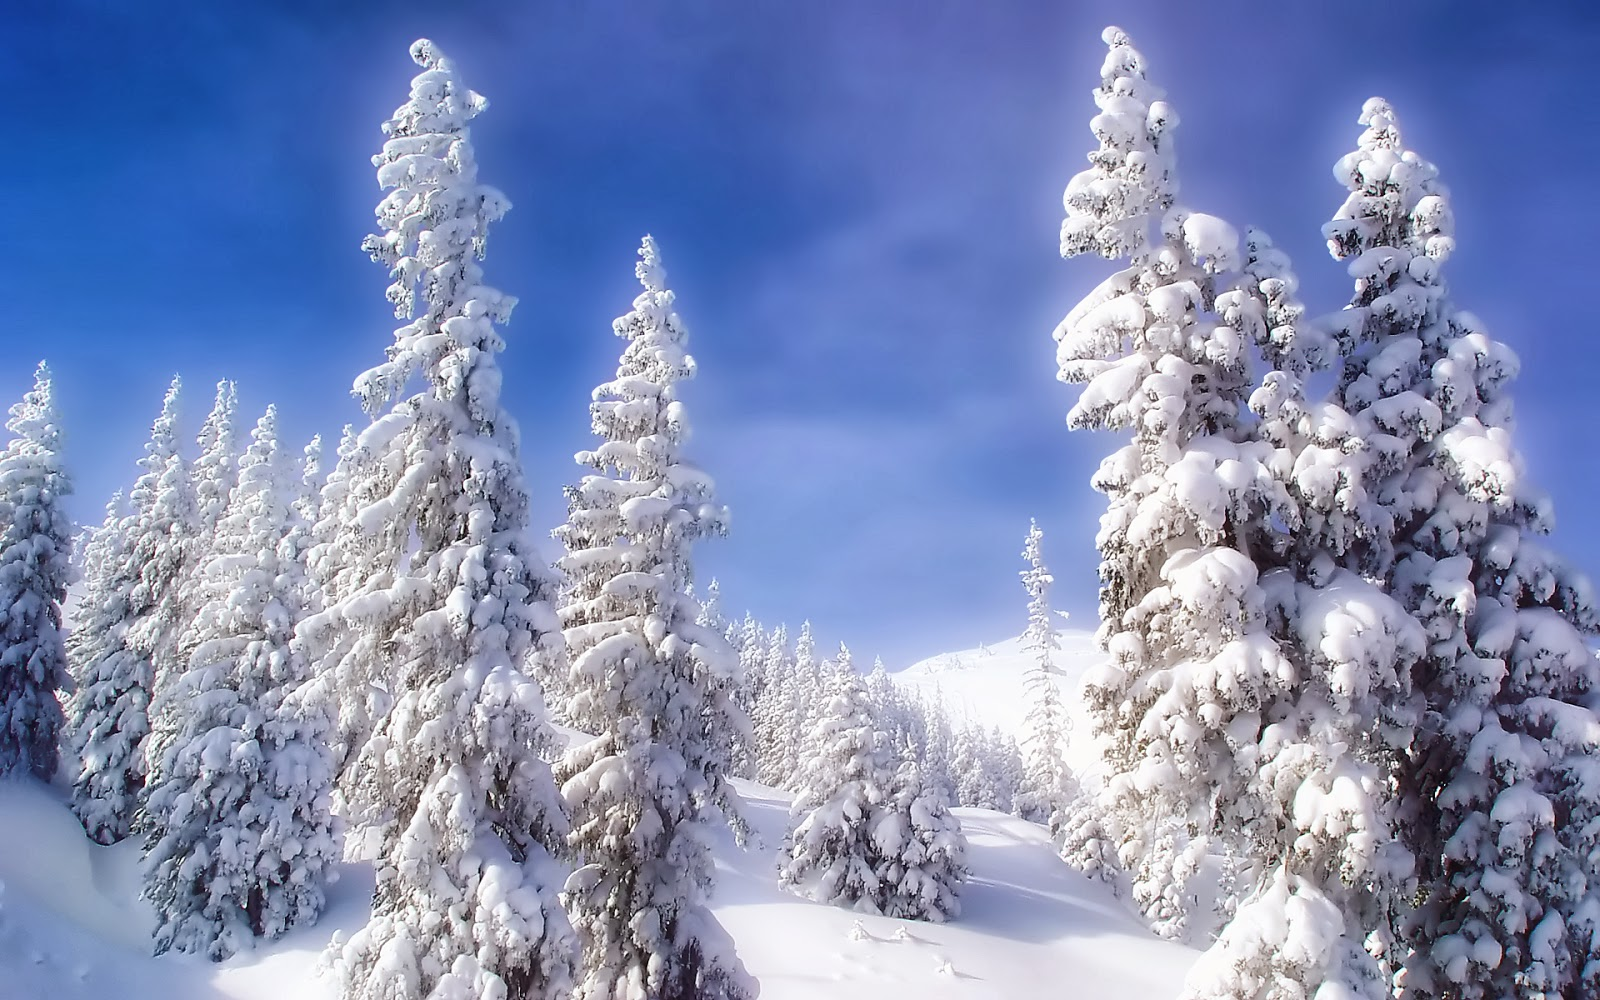 Winter HD Background Wallpapers - HD Wallpapers Blog